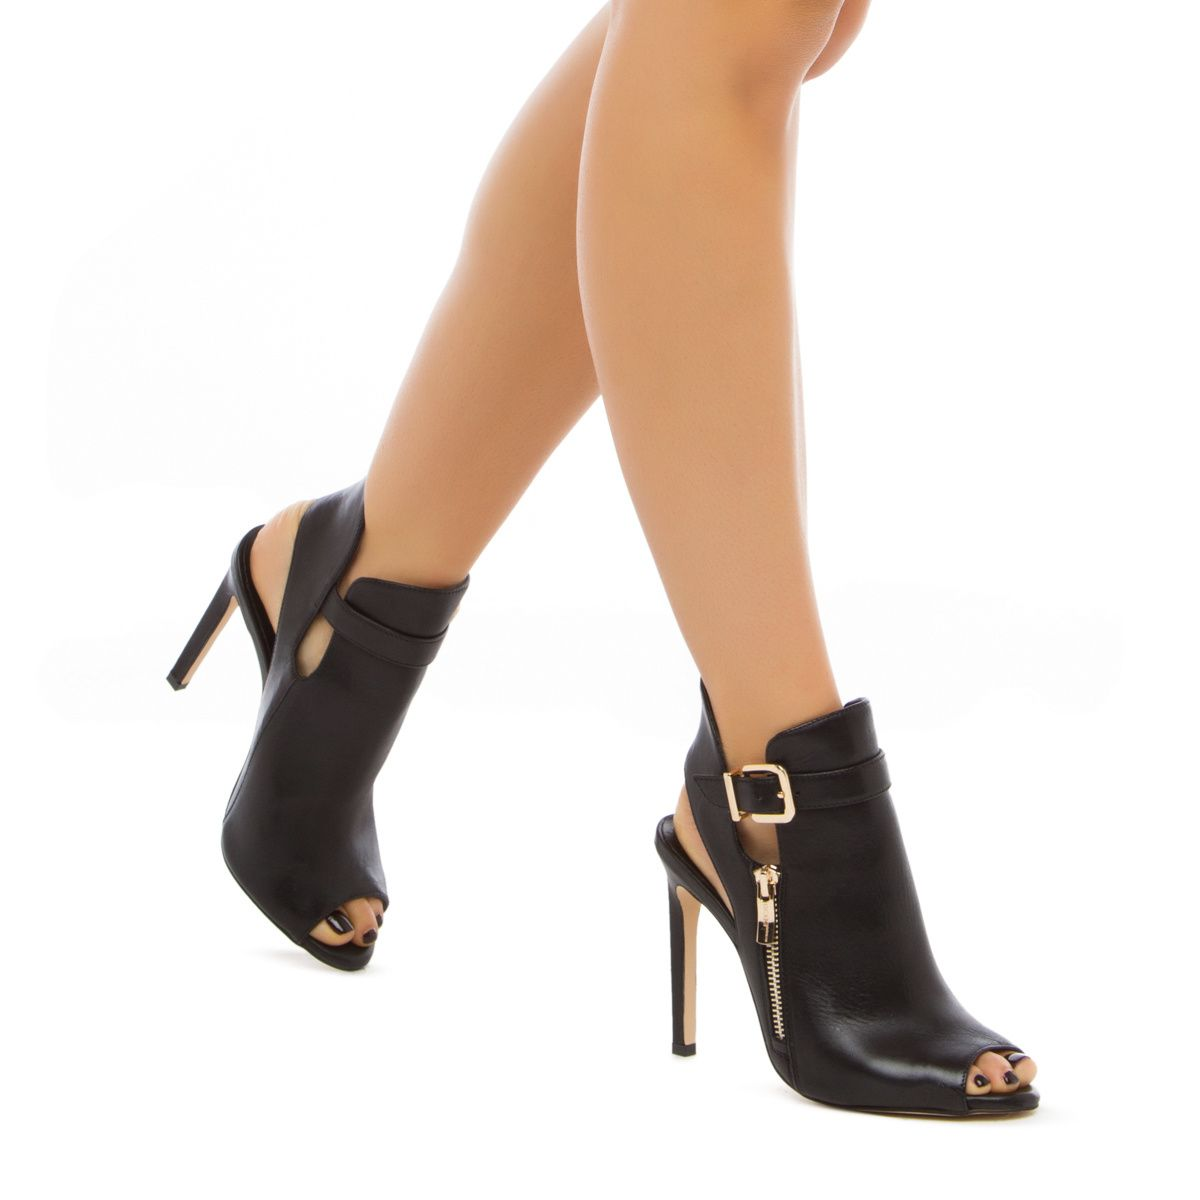 Chandler - ShoeDazzle Genuine-leather Chandler by BCBGENERATION is a wear-anywhere peep-toe bootie with an open back silhouette and the perfect amount of hardware.